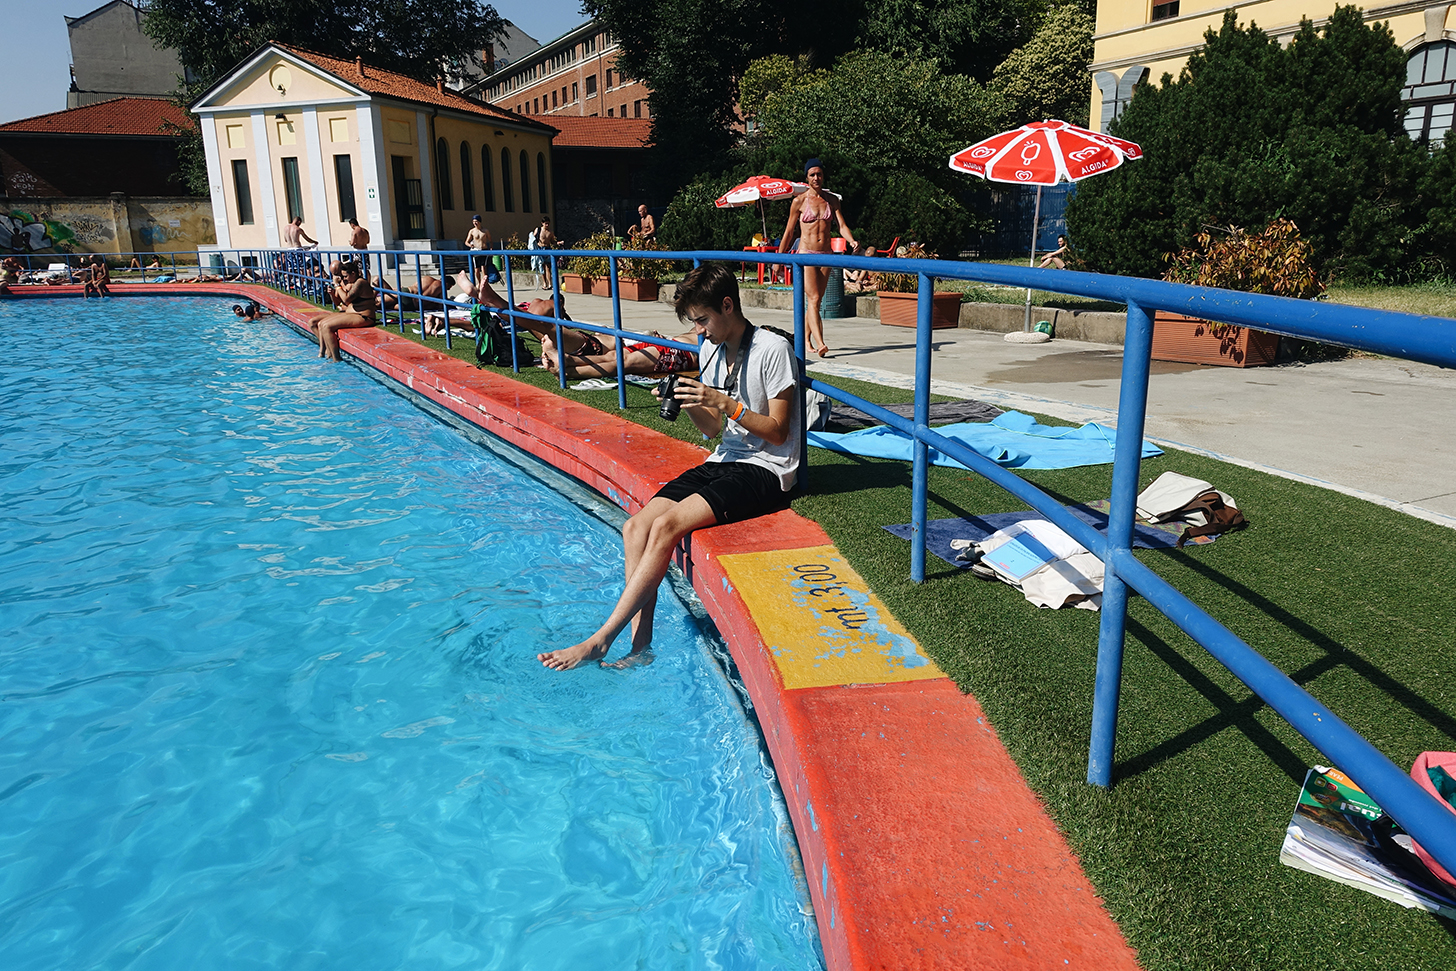 Public pools in Milan